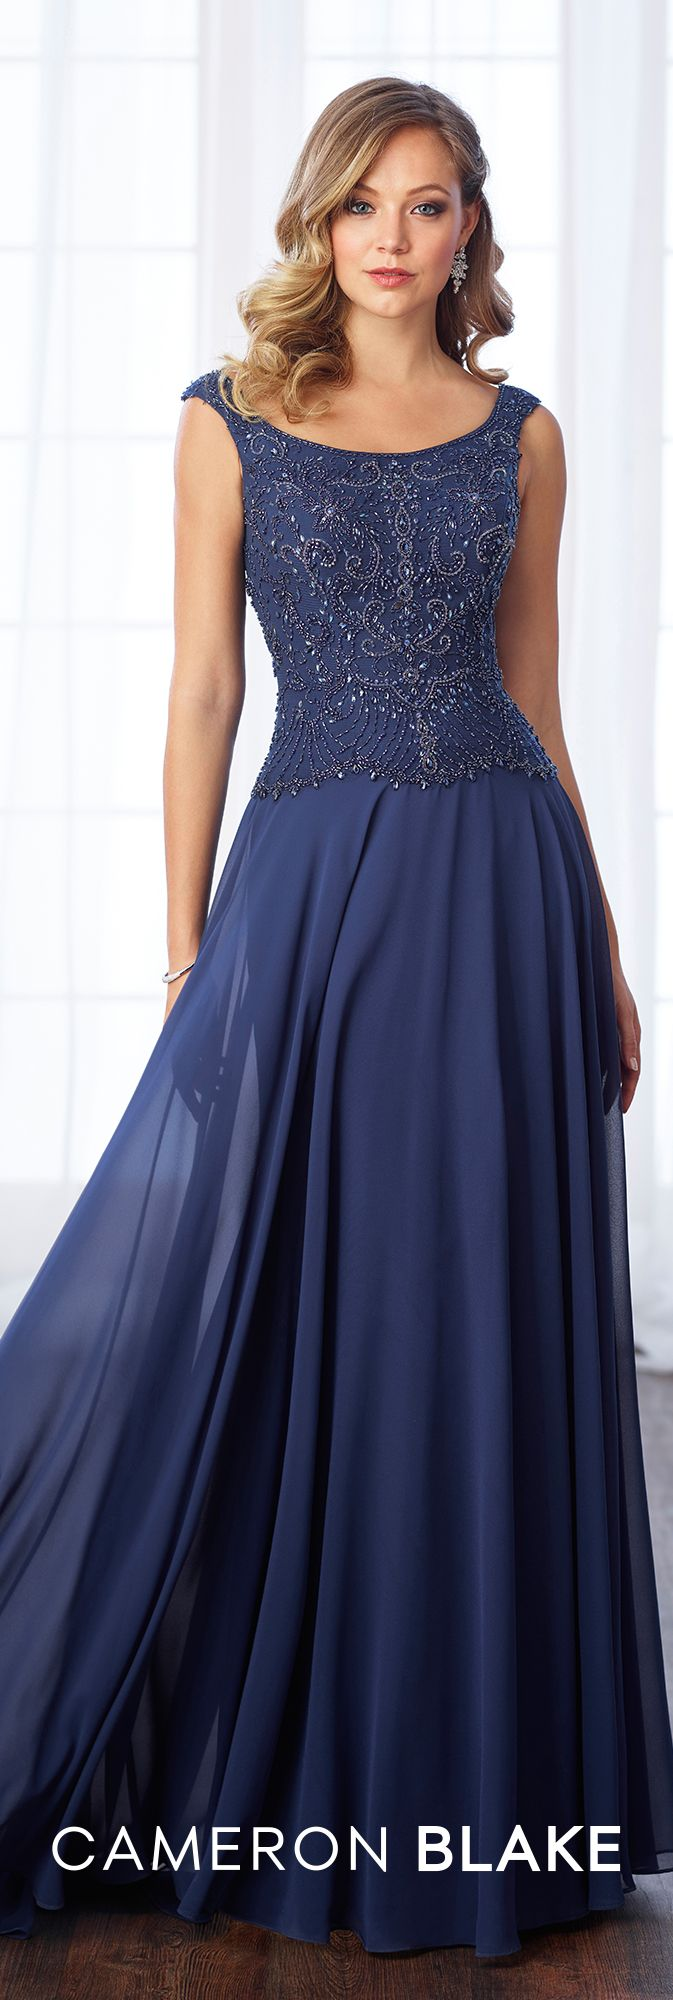 Formal Evening Gowns by Mon Cheri - Fall 2017 - Style No 217635 - navy blue chiffon evening dress with hand beaded bodice and tapered shoulder straps